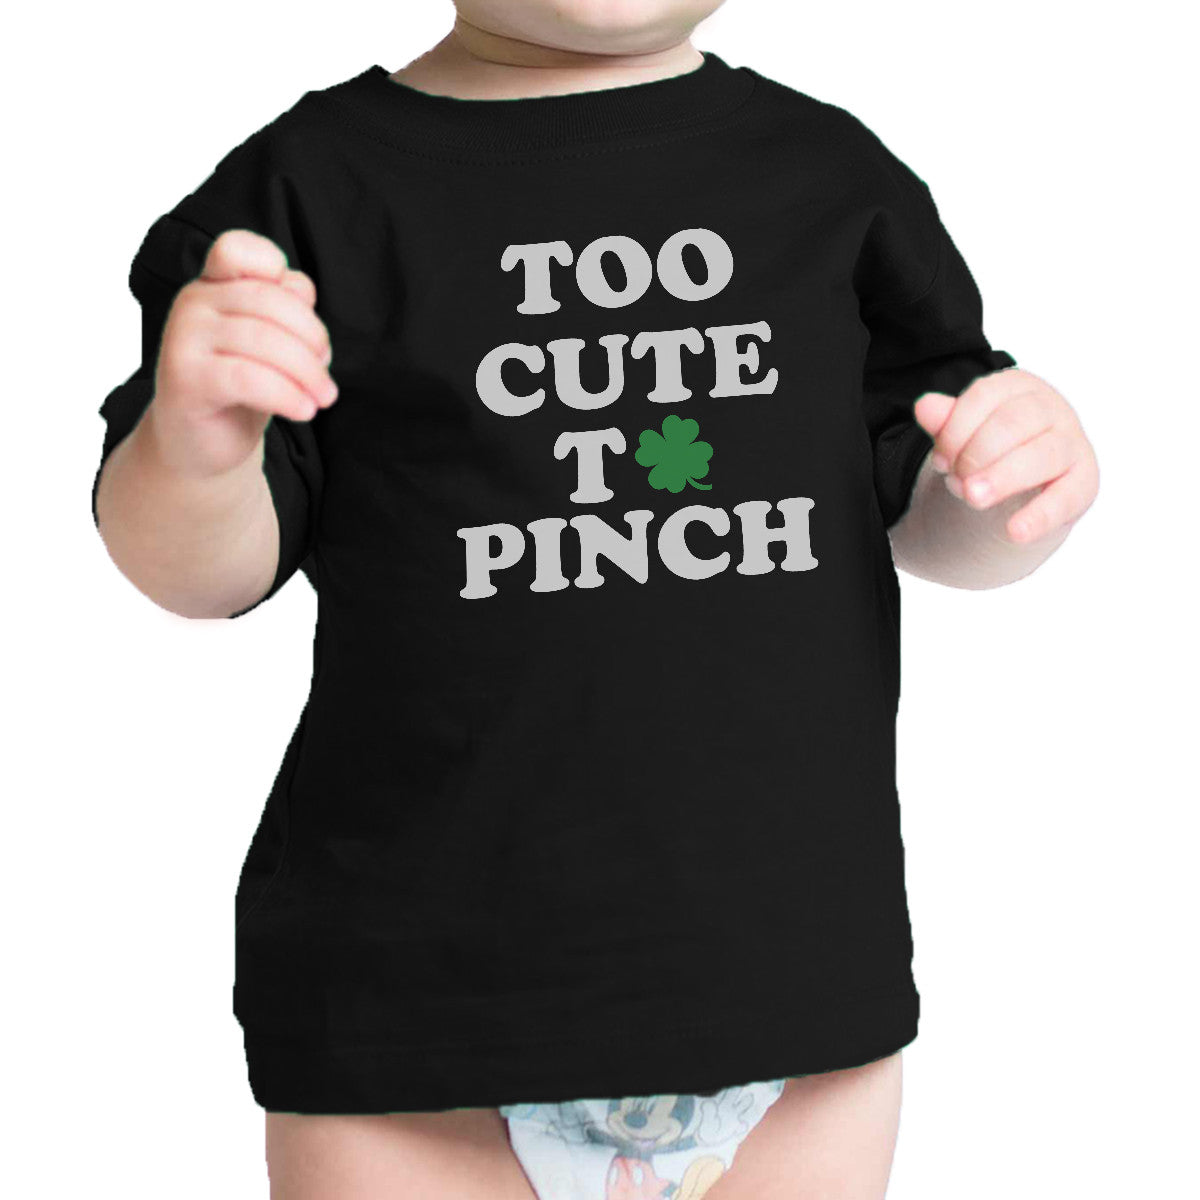 e31ce54c5 Too Cute To Pinch White Funny Design Baby Tee For St Patricks Day ...